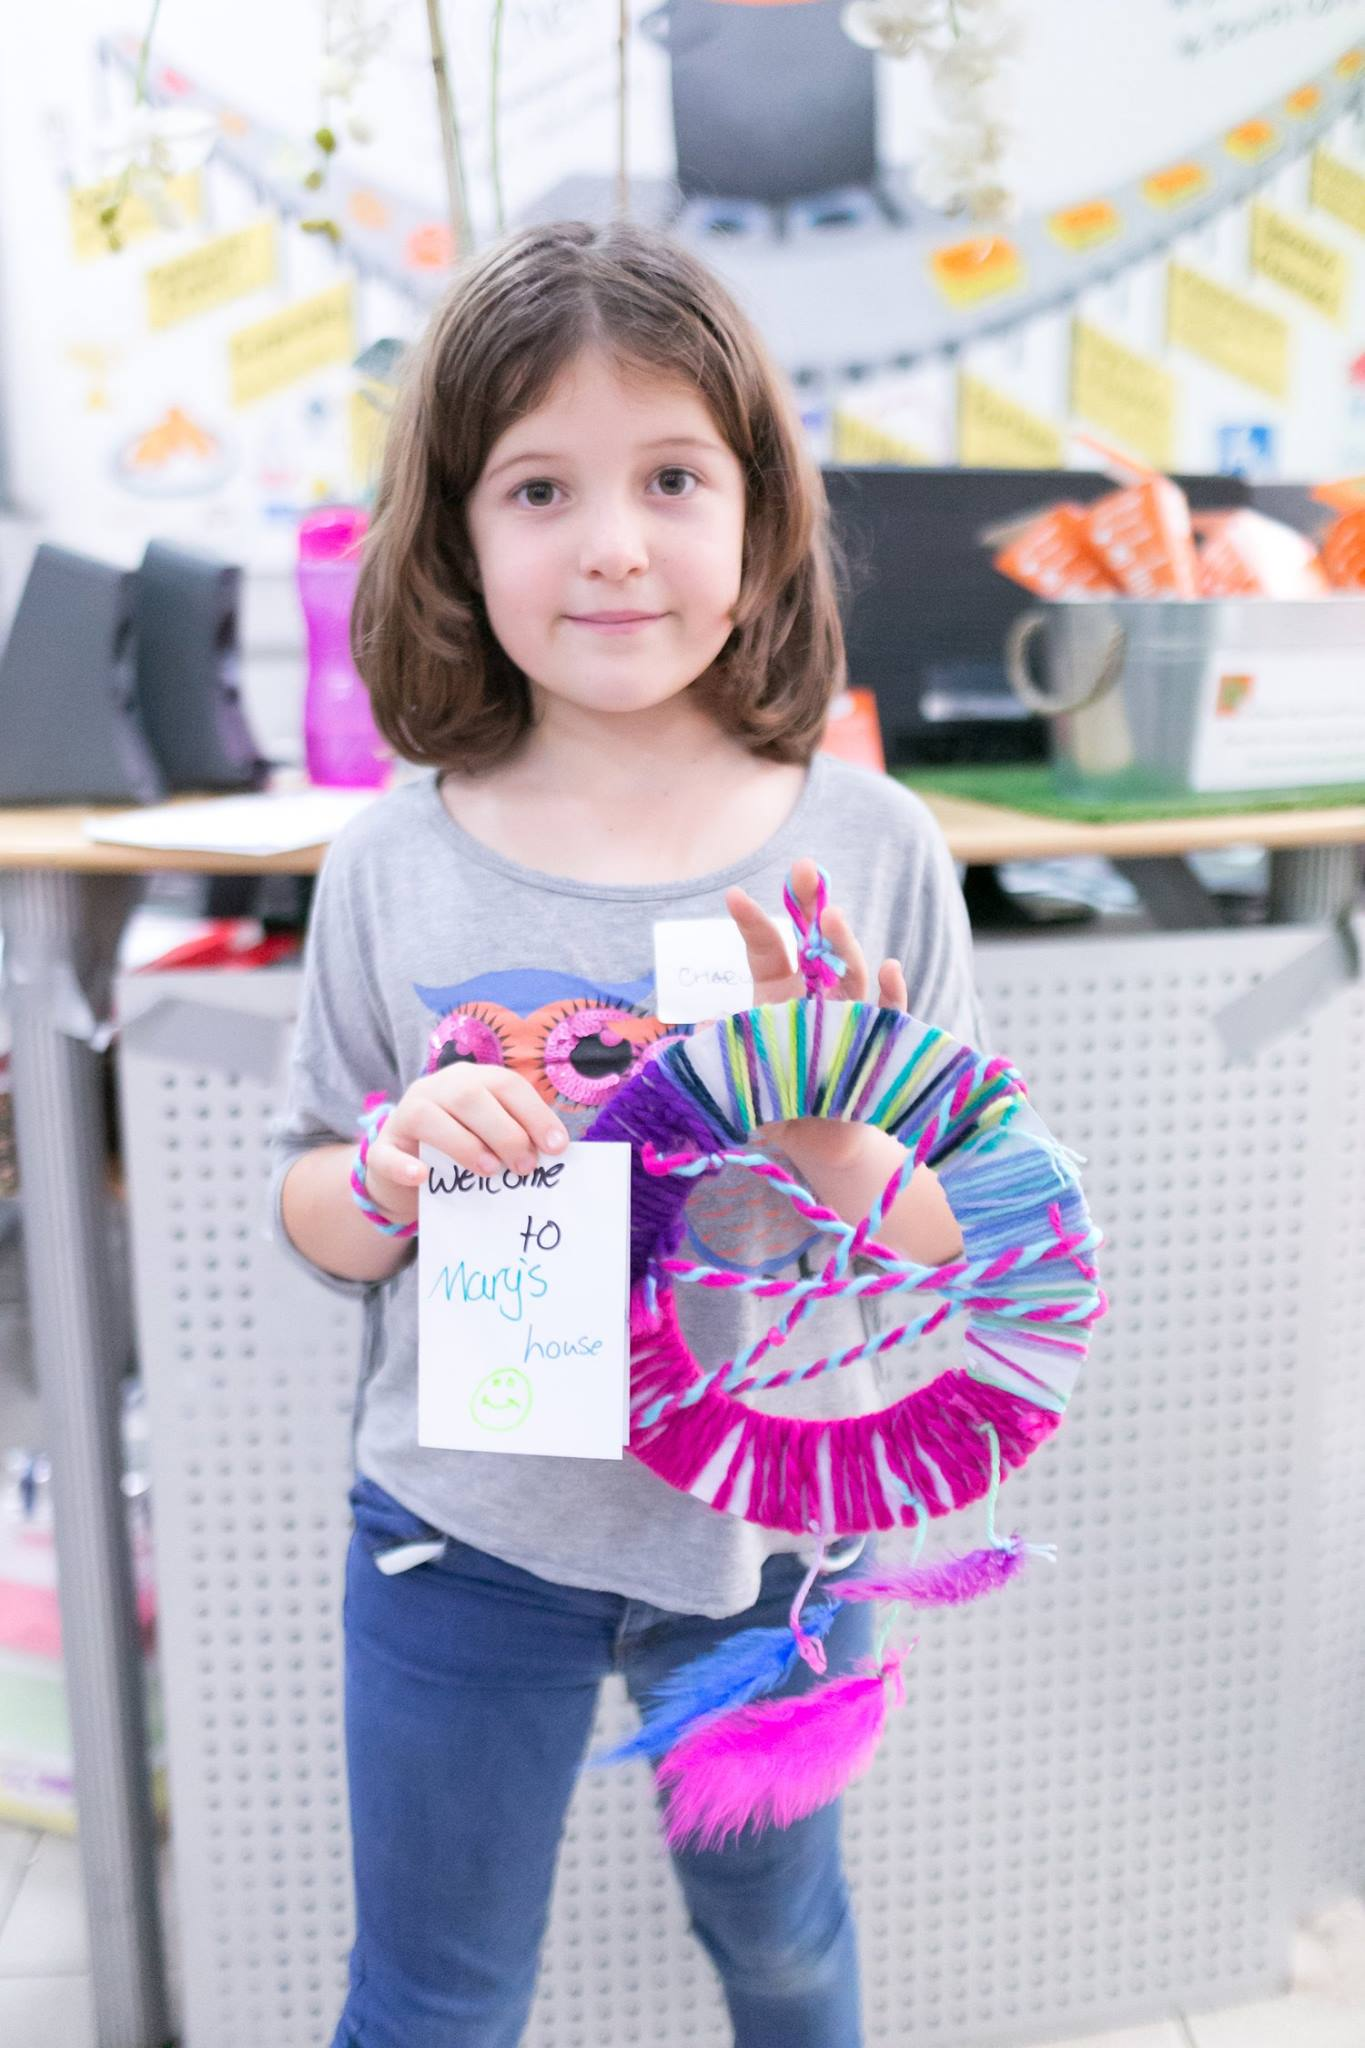 A gorgeous dreamcatcher and welcome card made by kids